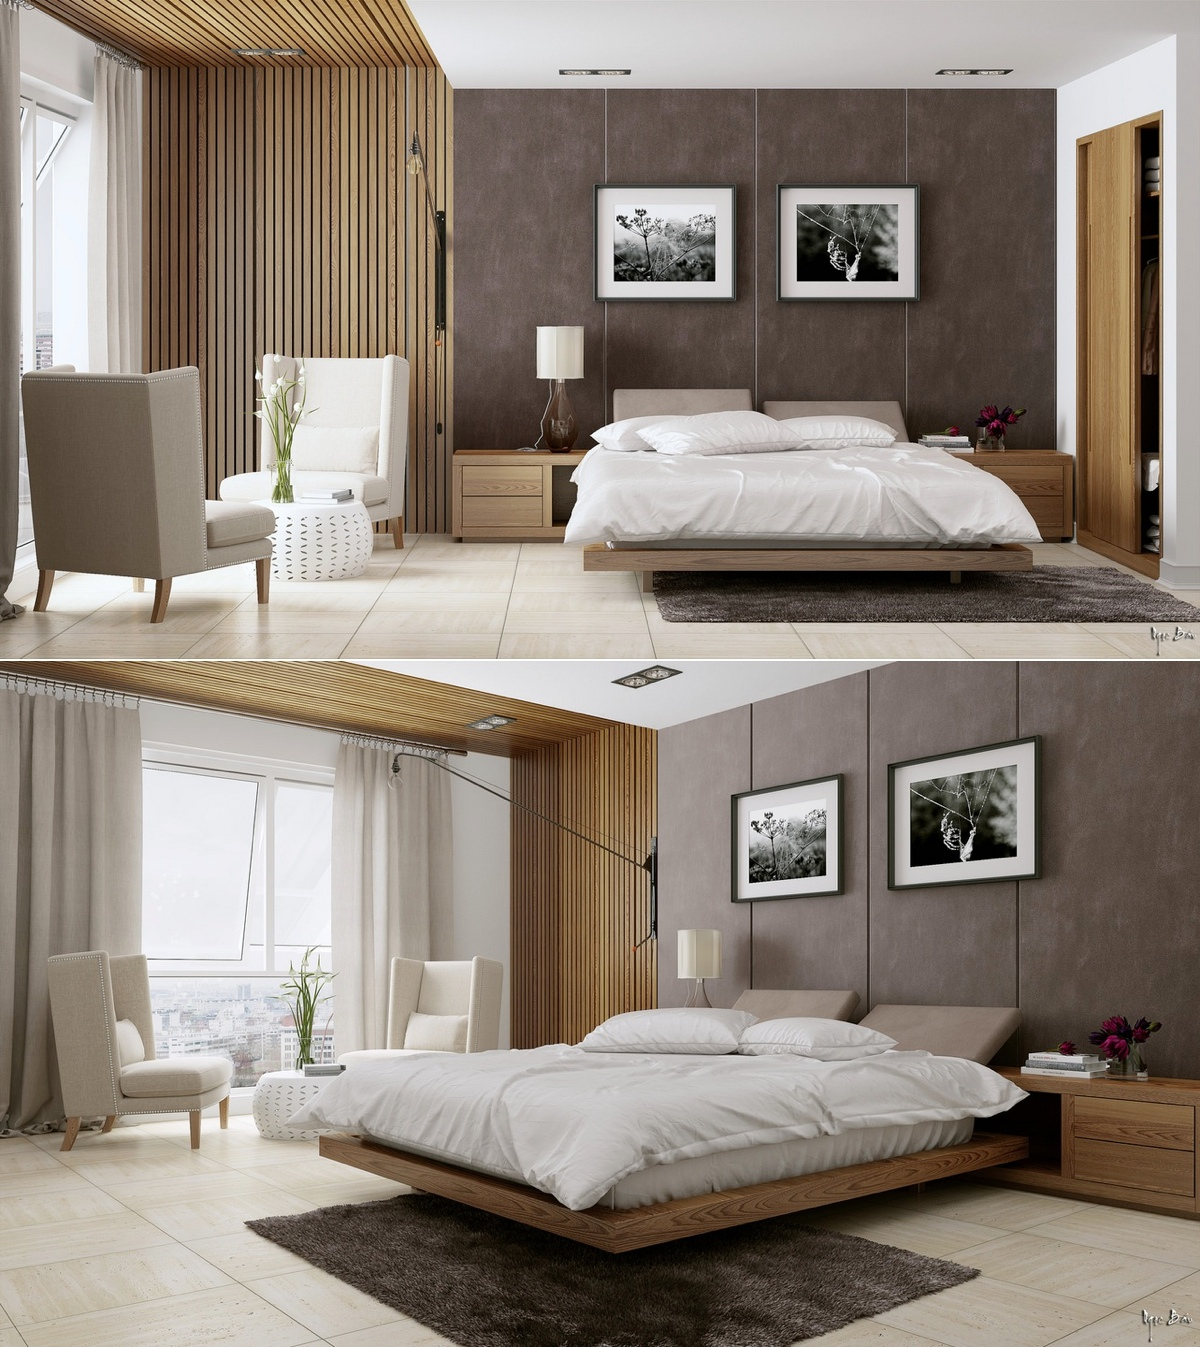 stylish bedroom designs with beautiful creative details - Bed Design Ideas